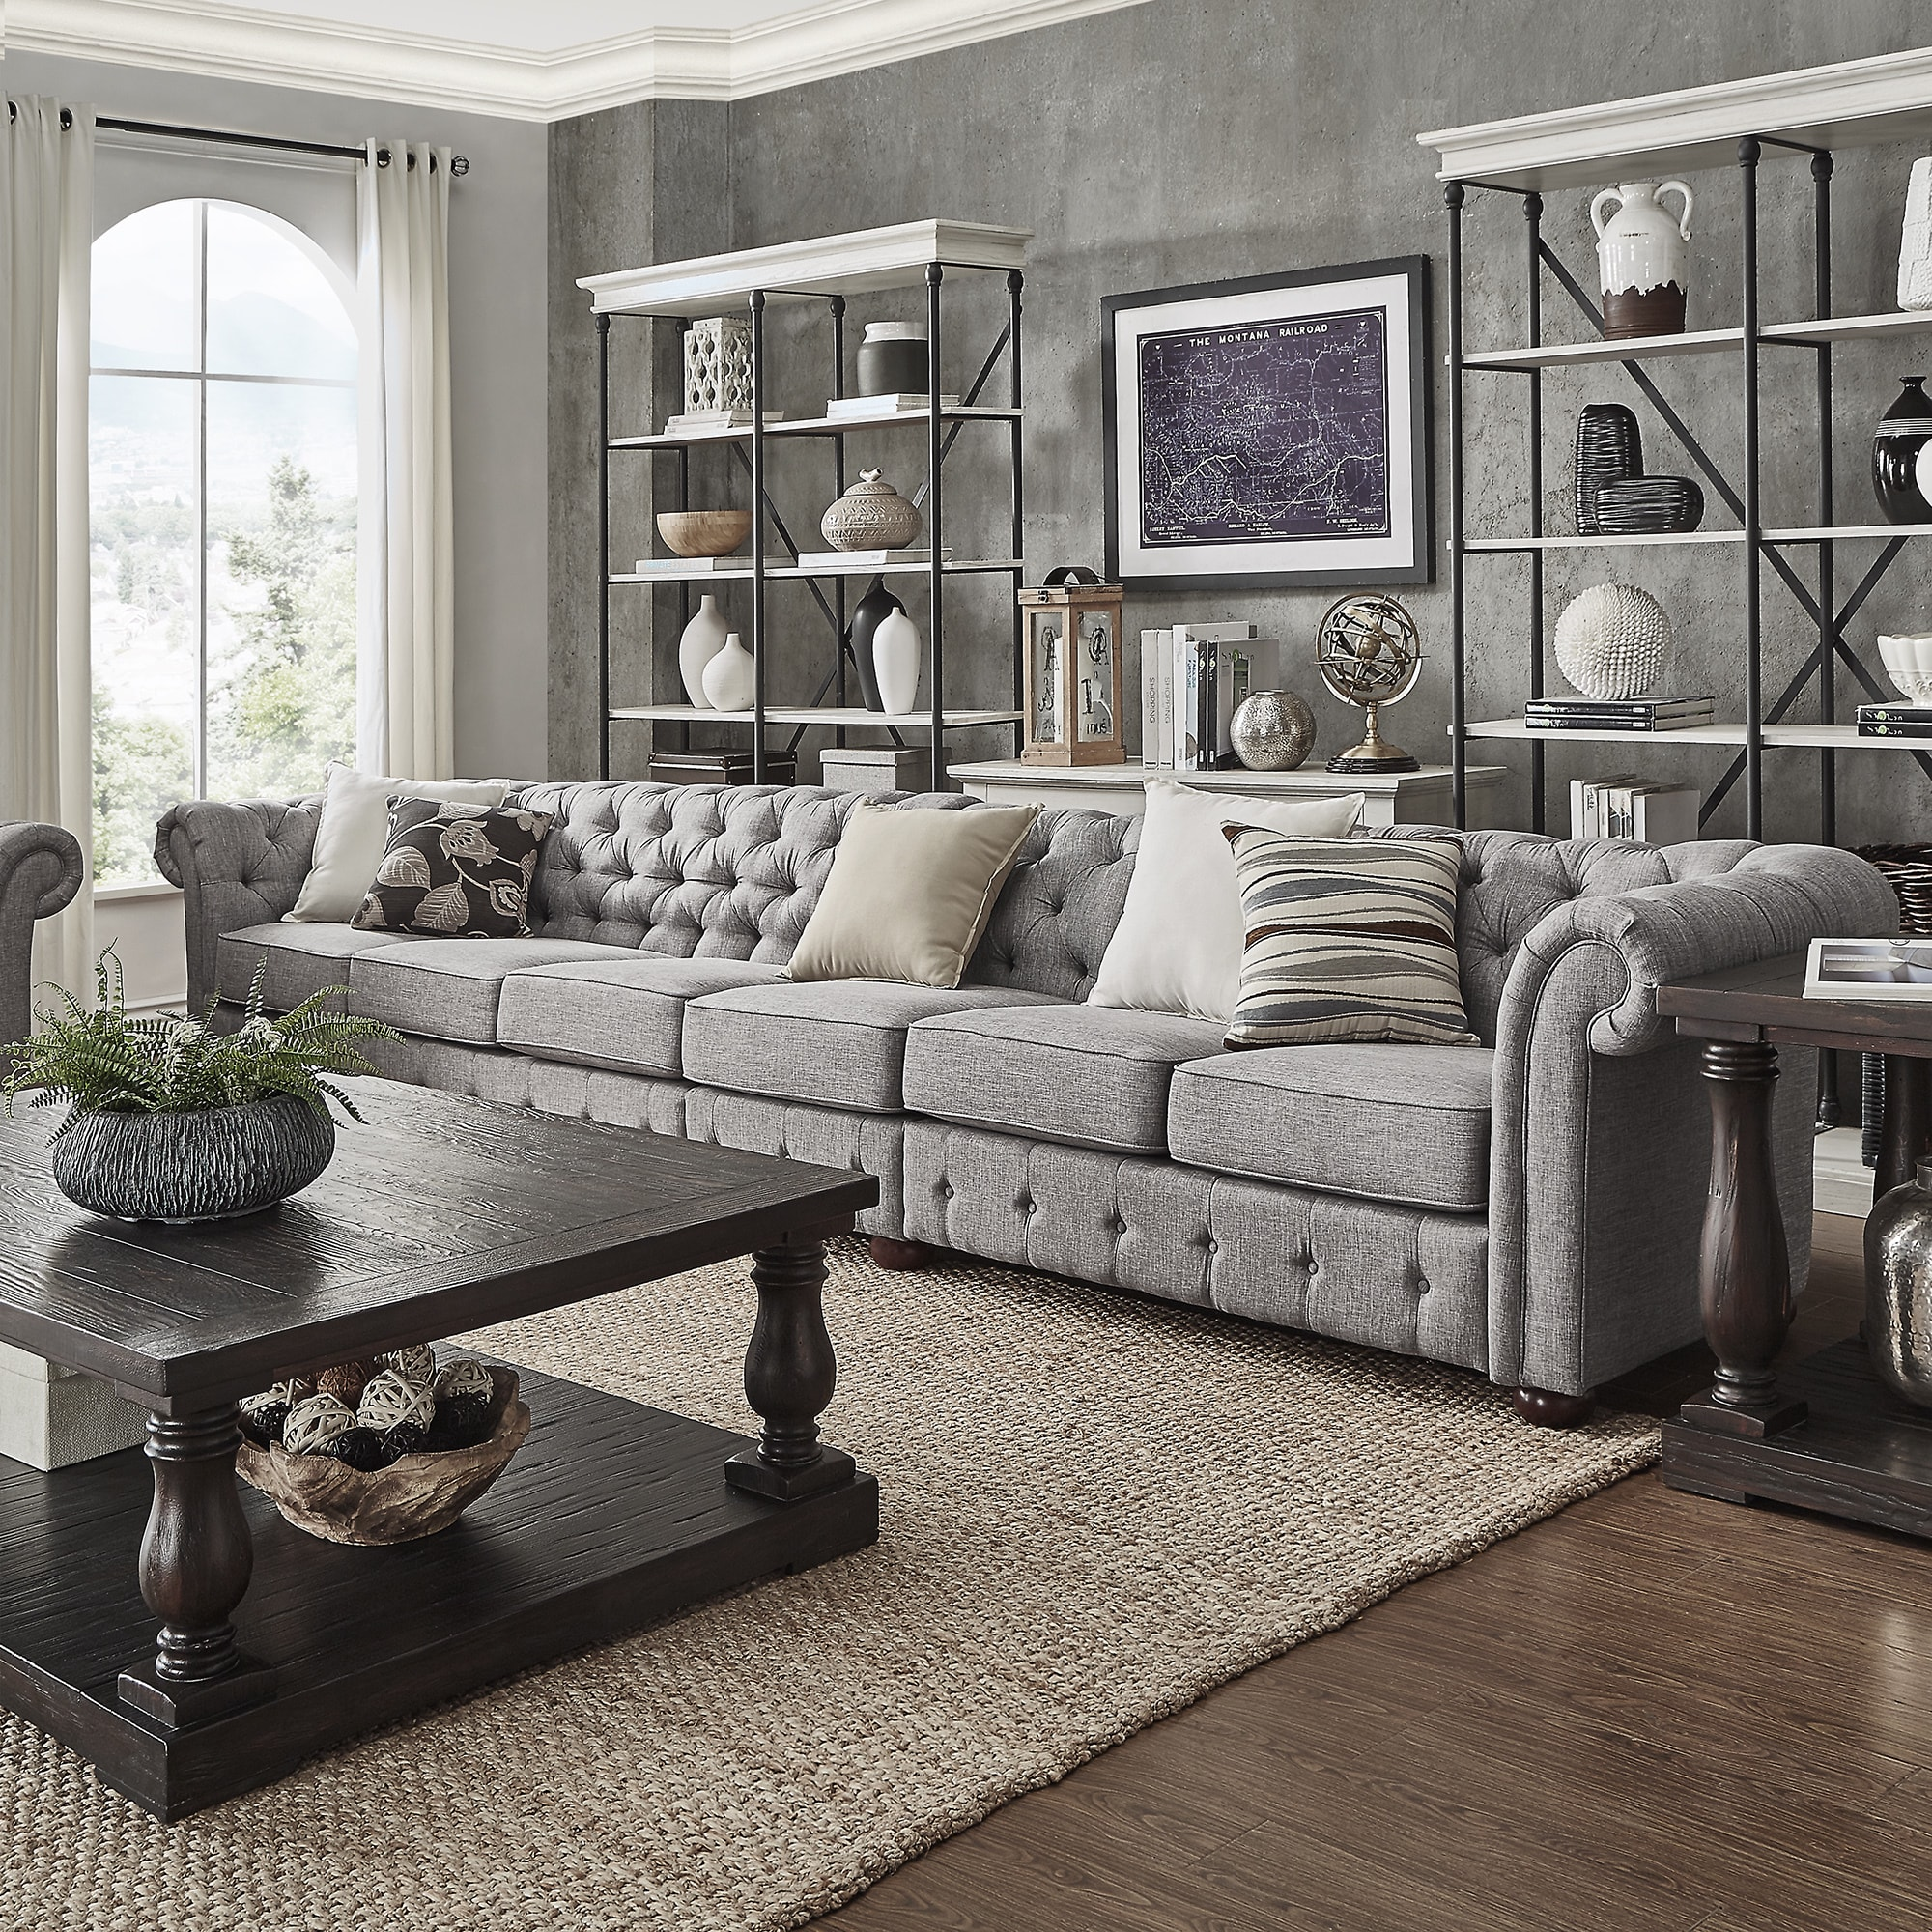 Knightsbridge Grey Linen Oversize Extra Long Tufted Chesterfield Modular  Sofa By INSPIRE Q Artisan (